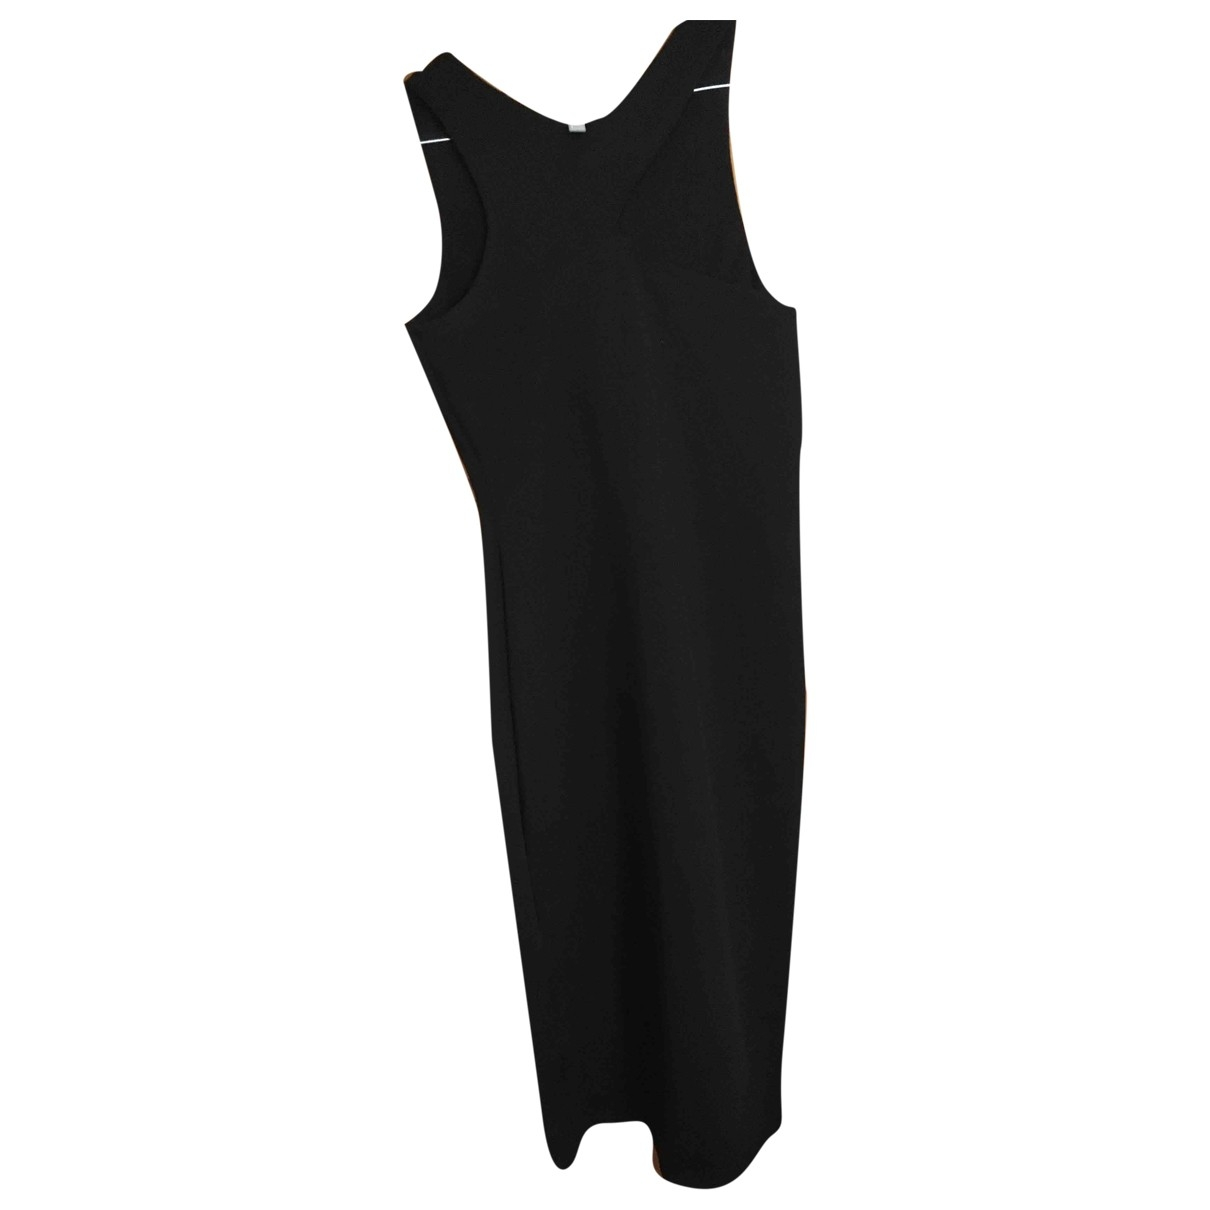 Asos \N Black dress for Women M International